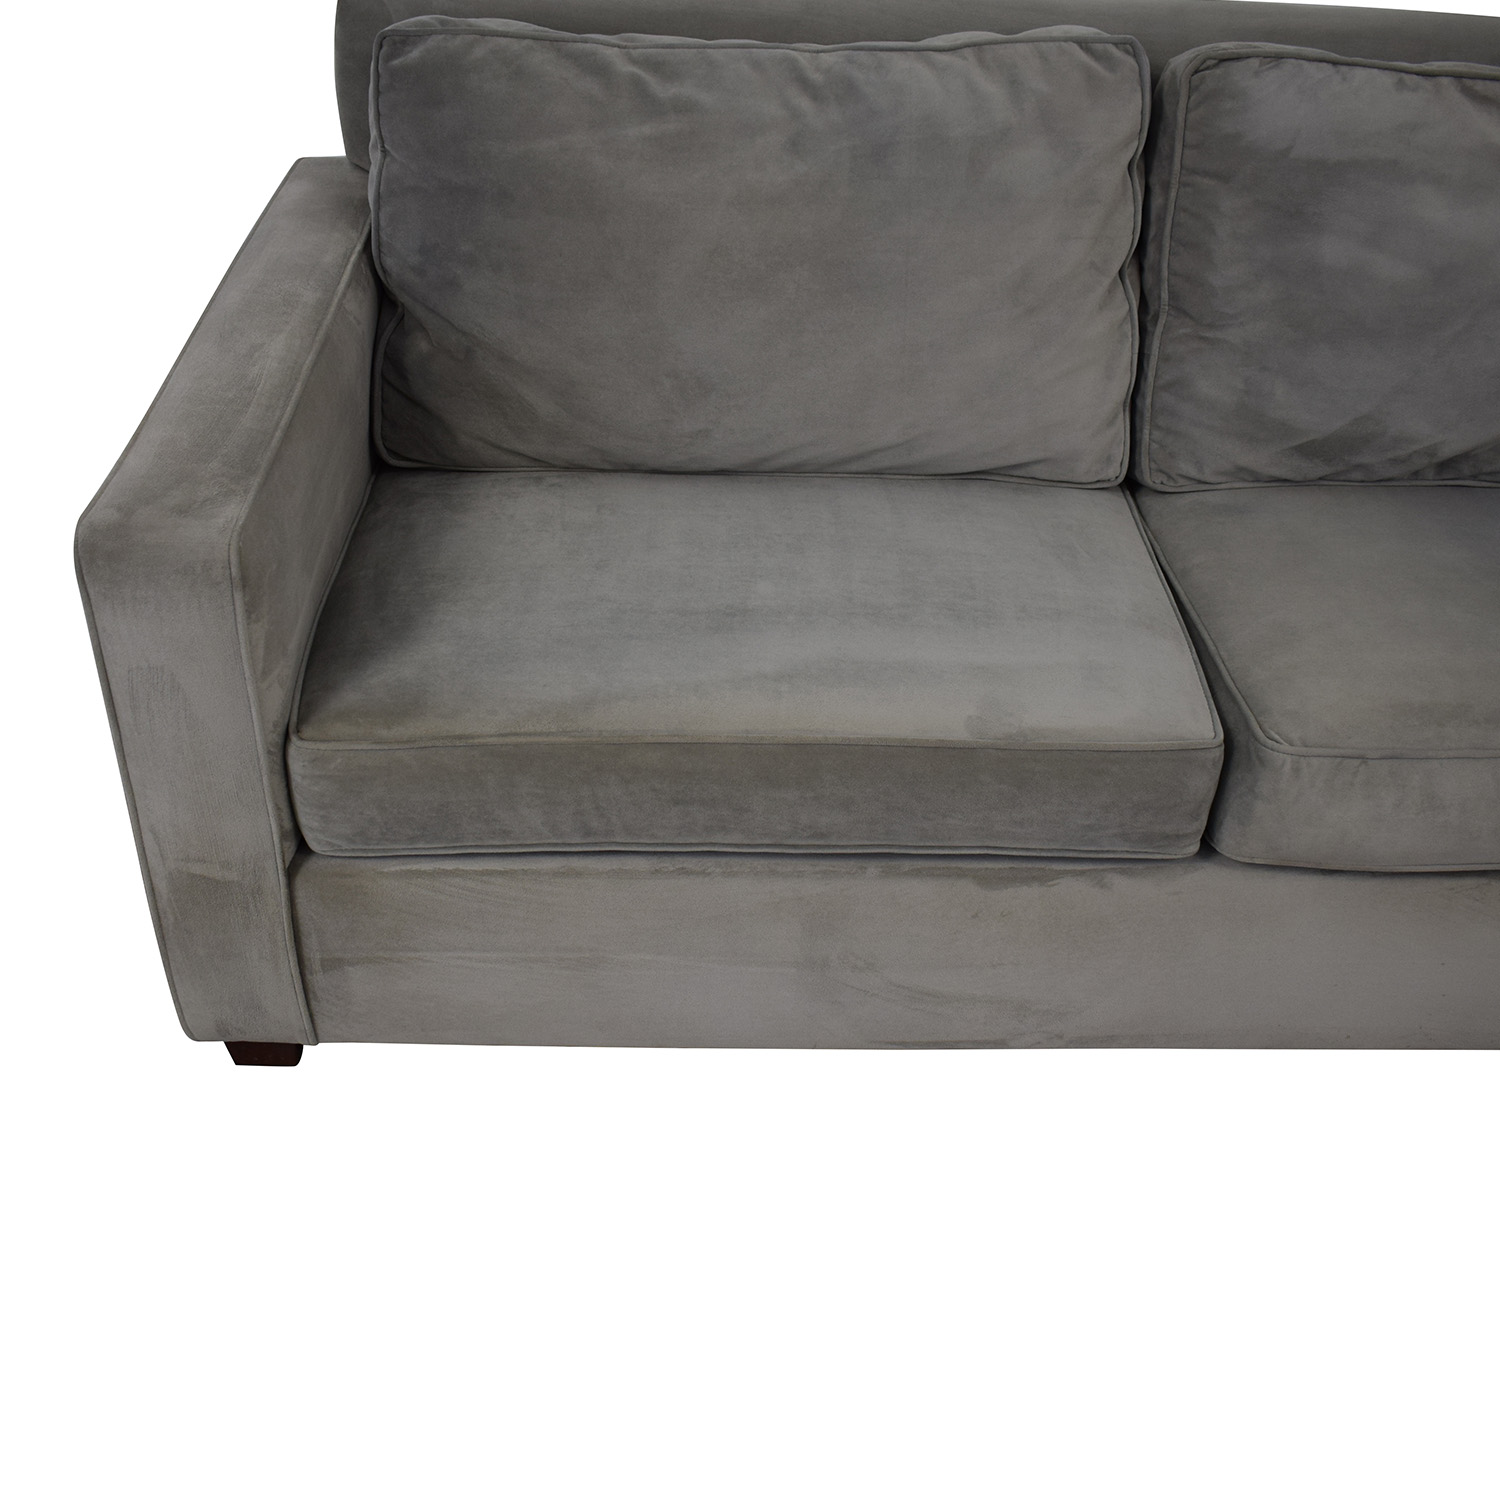 West Elm West Elm Henry Sofa nj